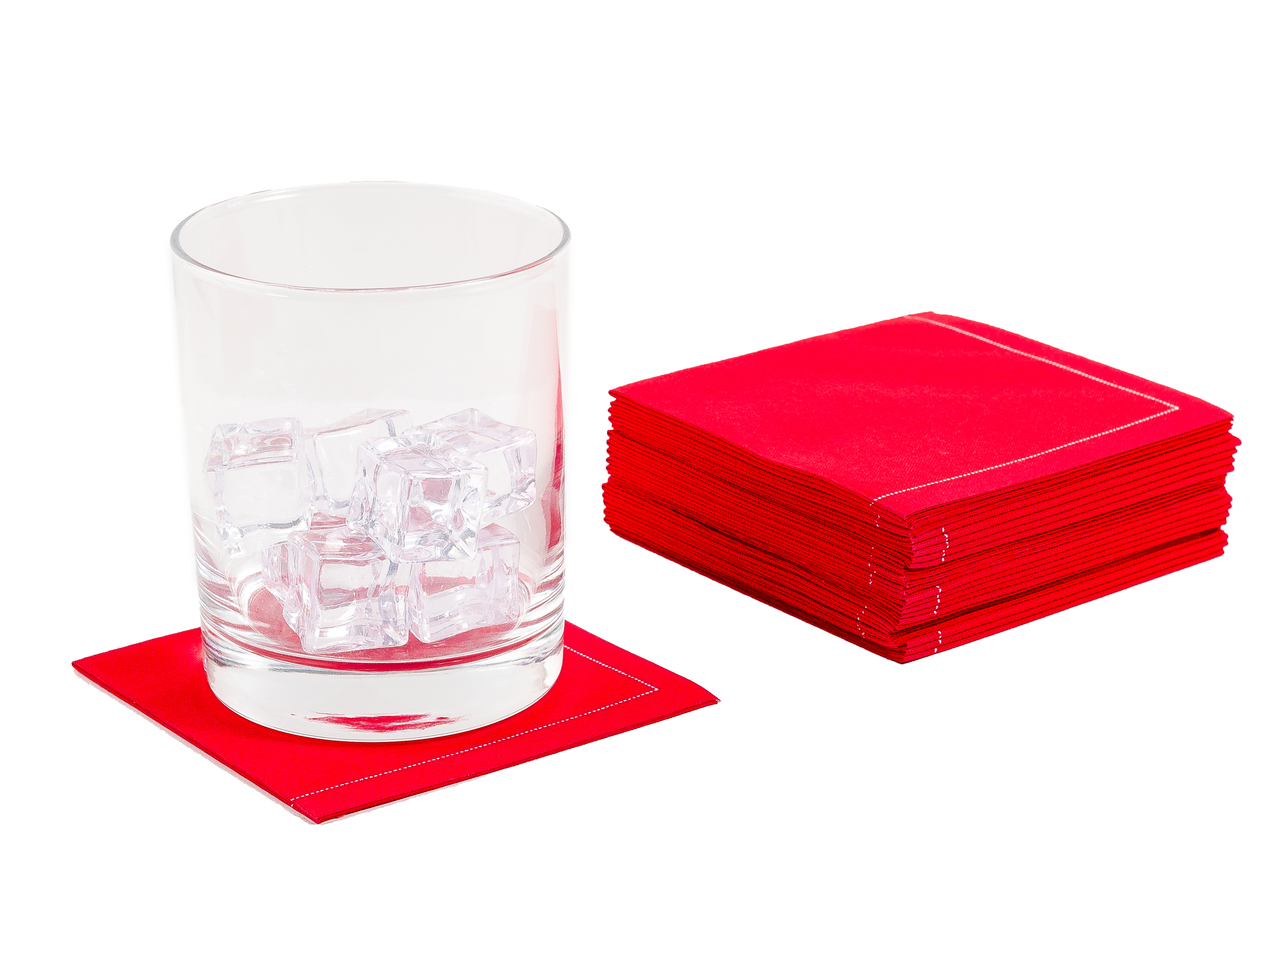 "Toreador Cotton 1/4 Fold Cocktail (140 GSM) - 8"" x 8"" (folded 4"" x 4"") - 600 units"